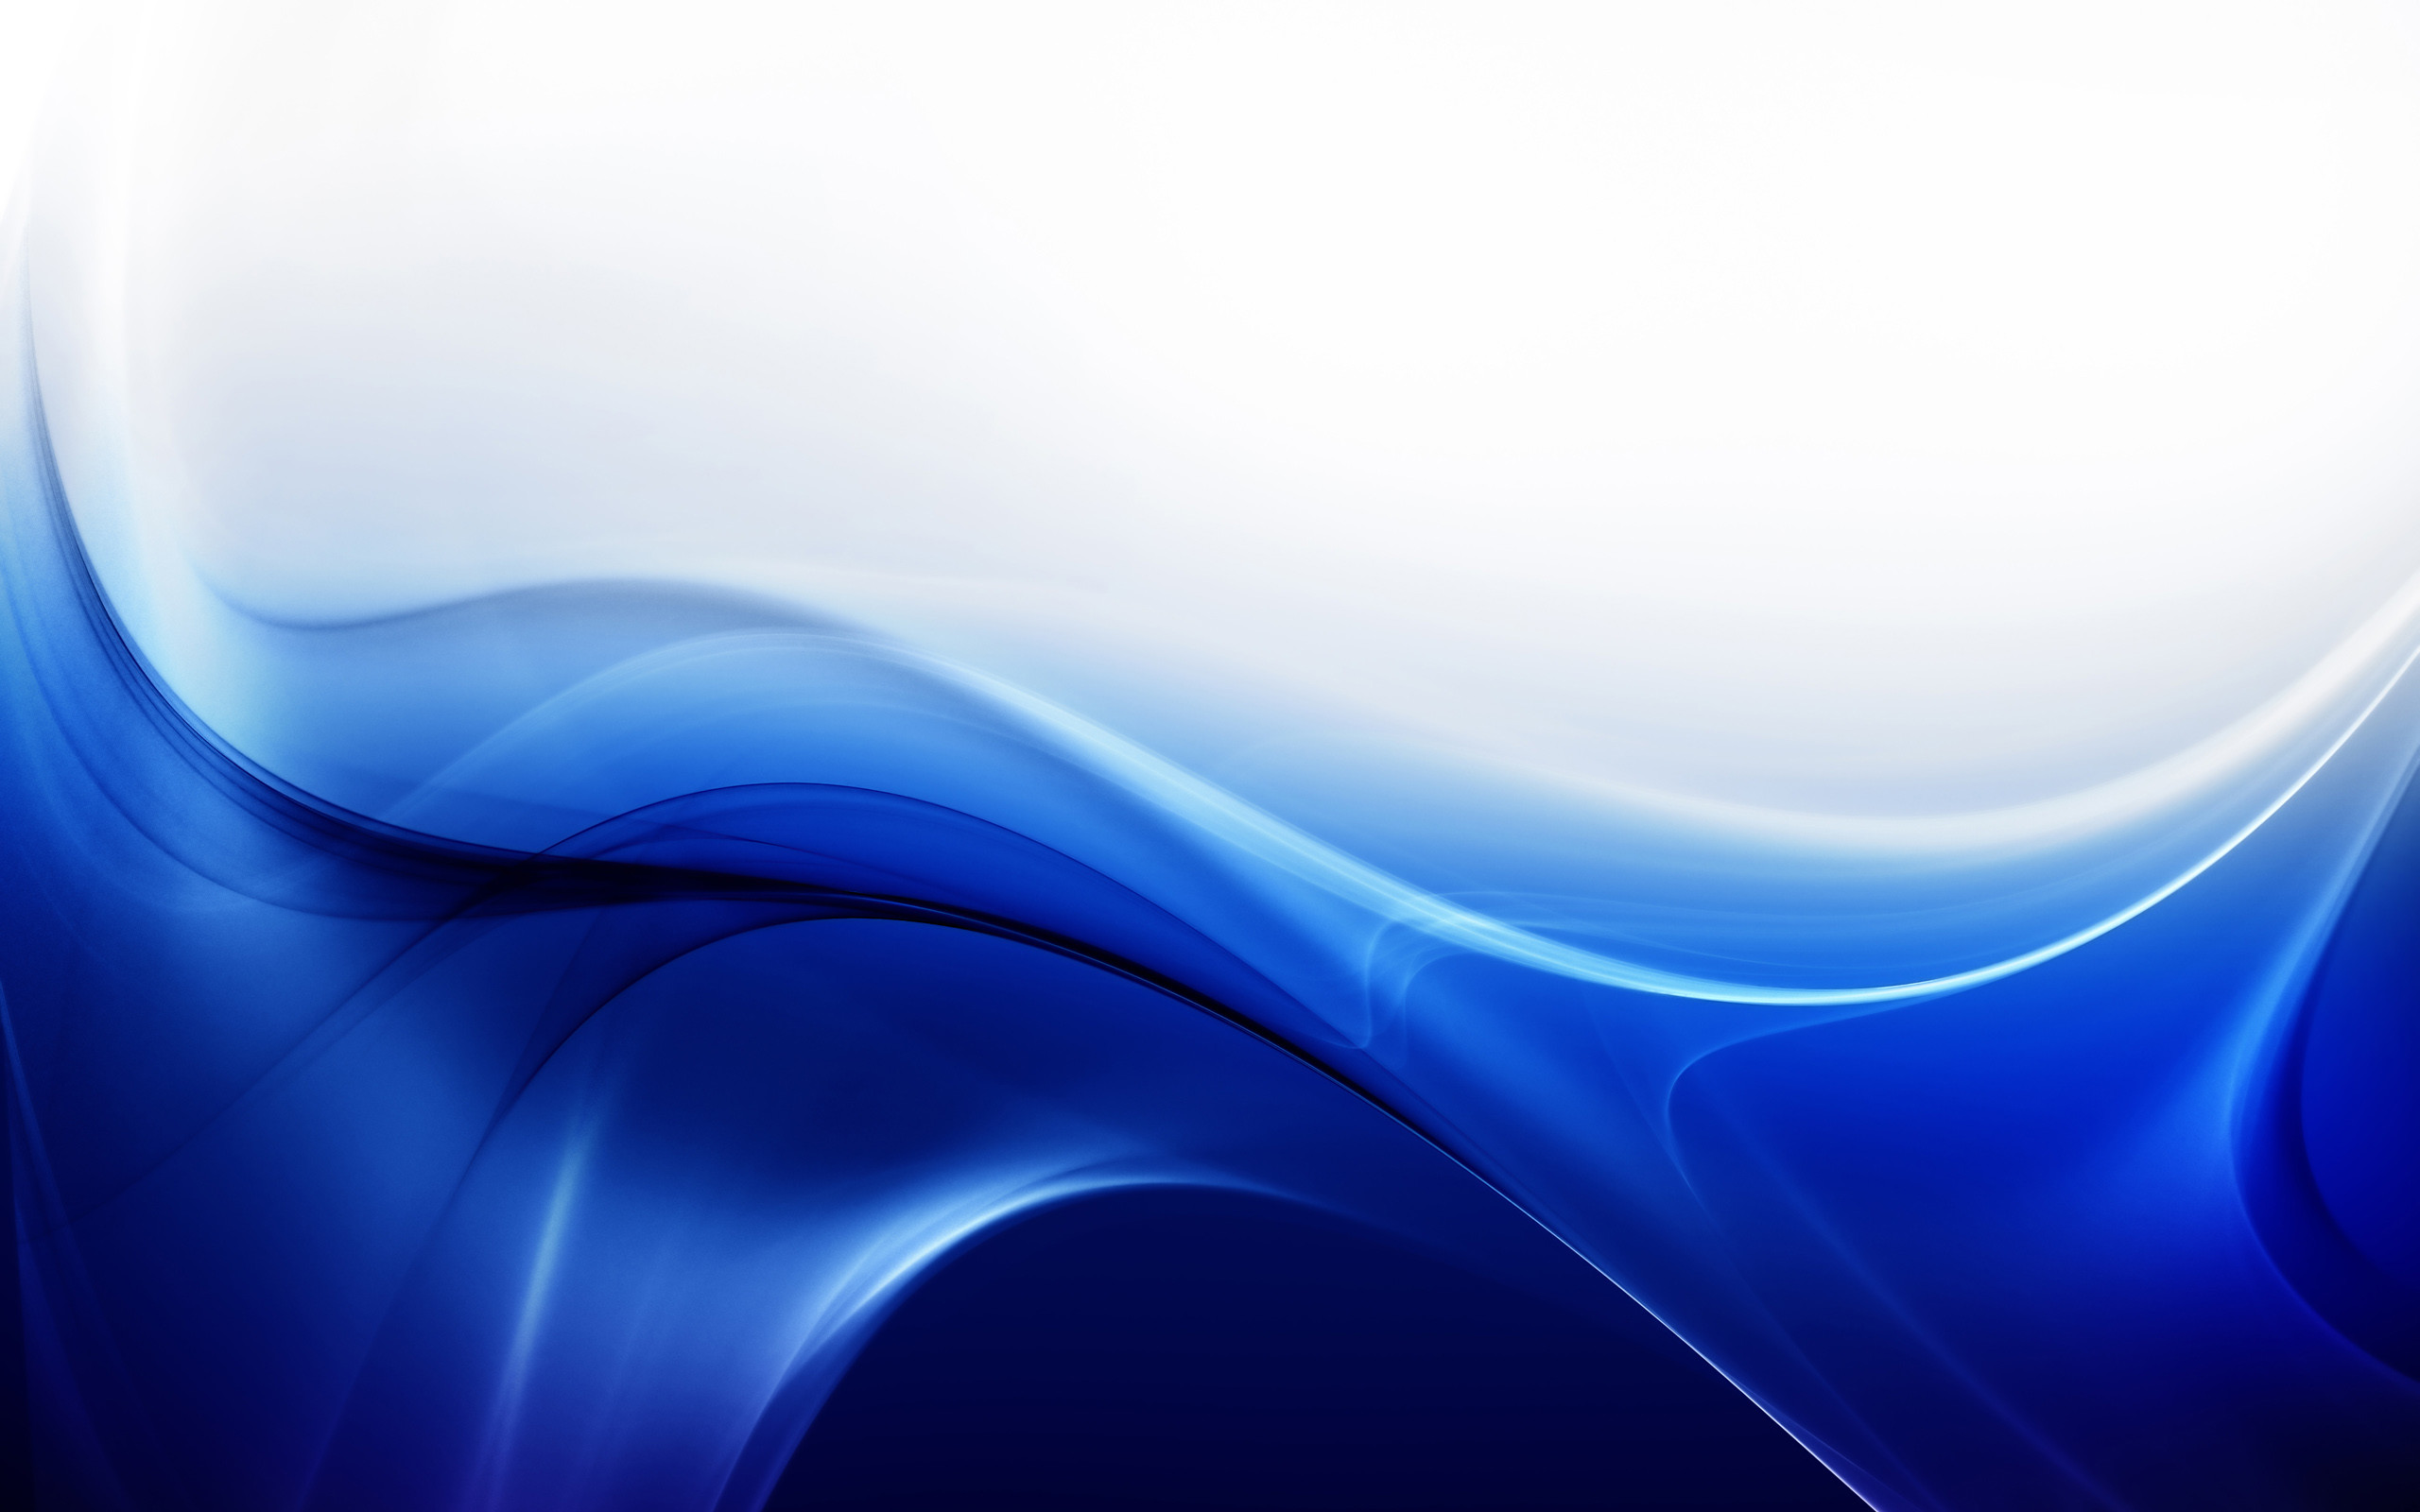 Wallpapers Blue Abstract (72 Wallpapers)